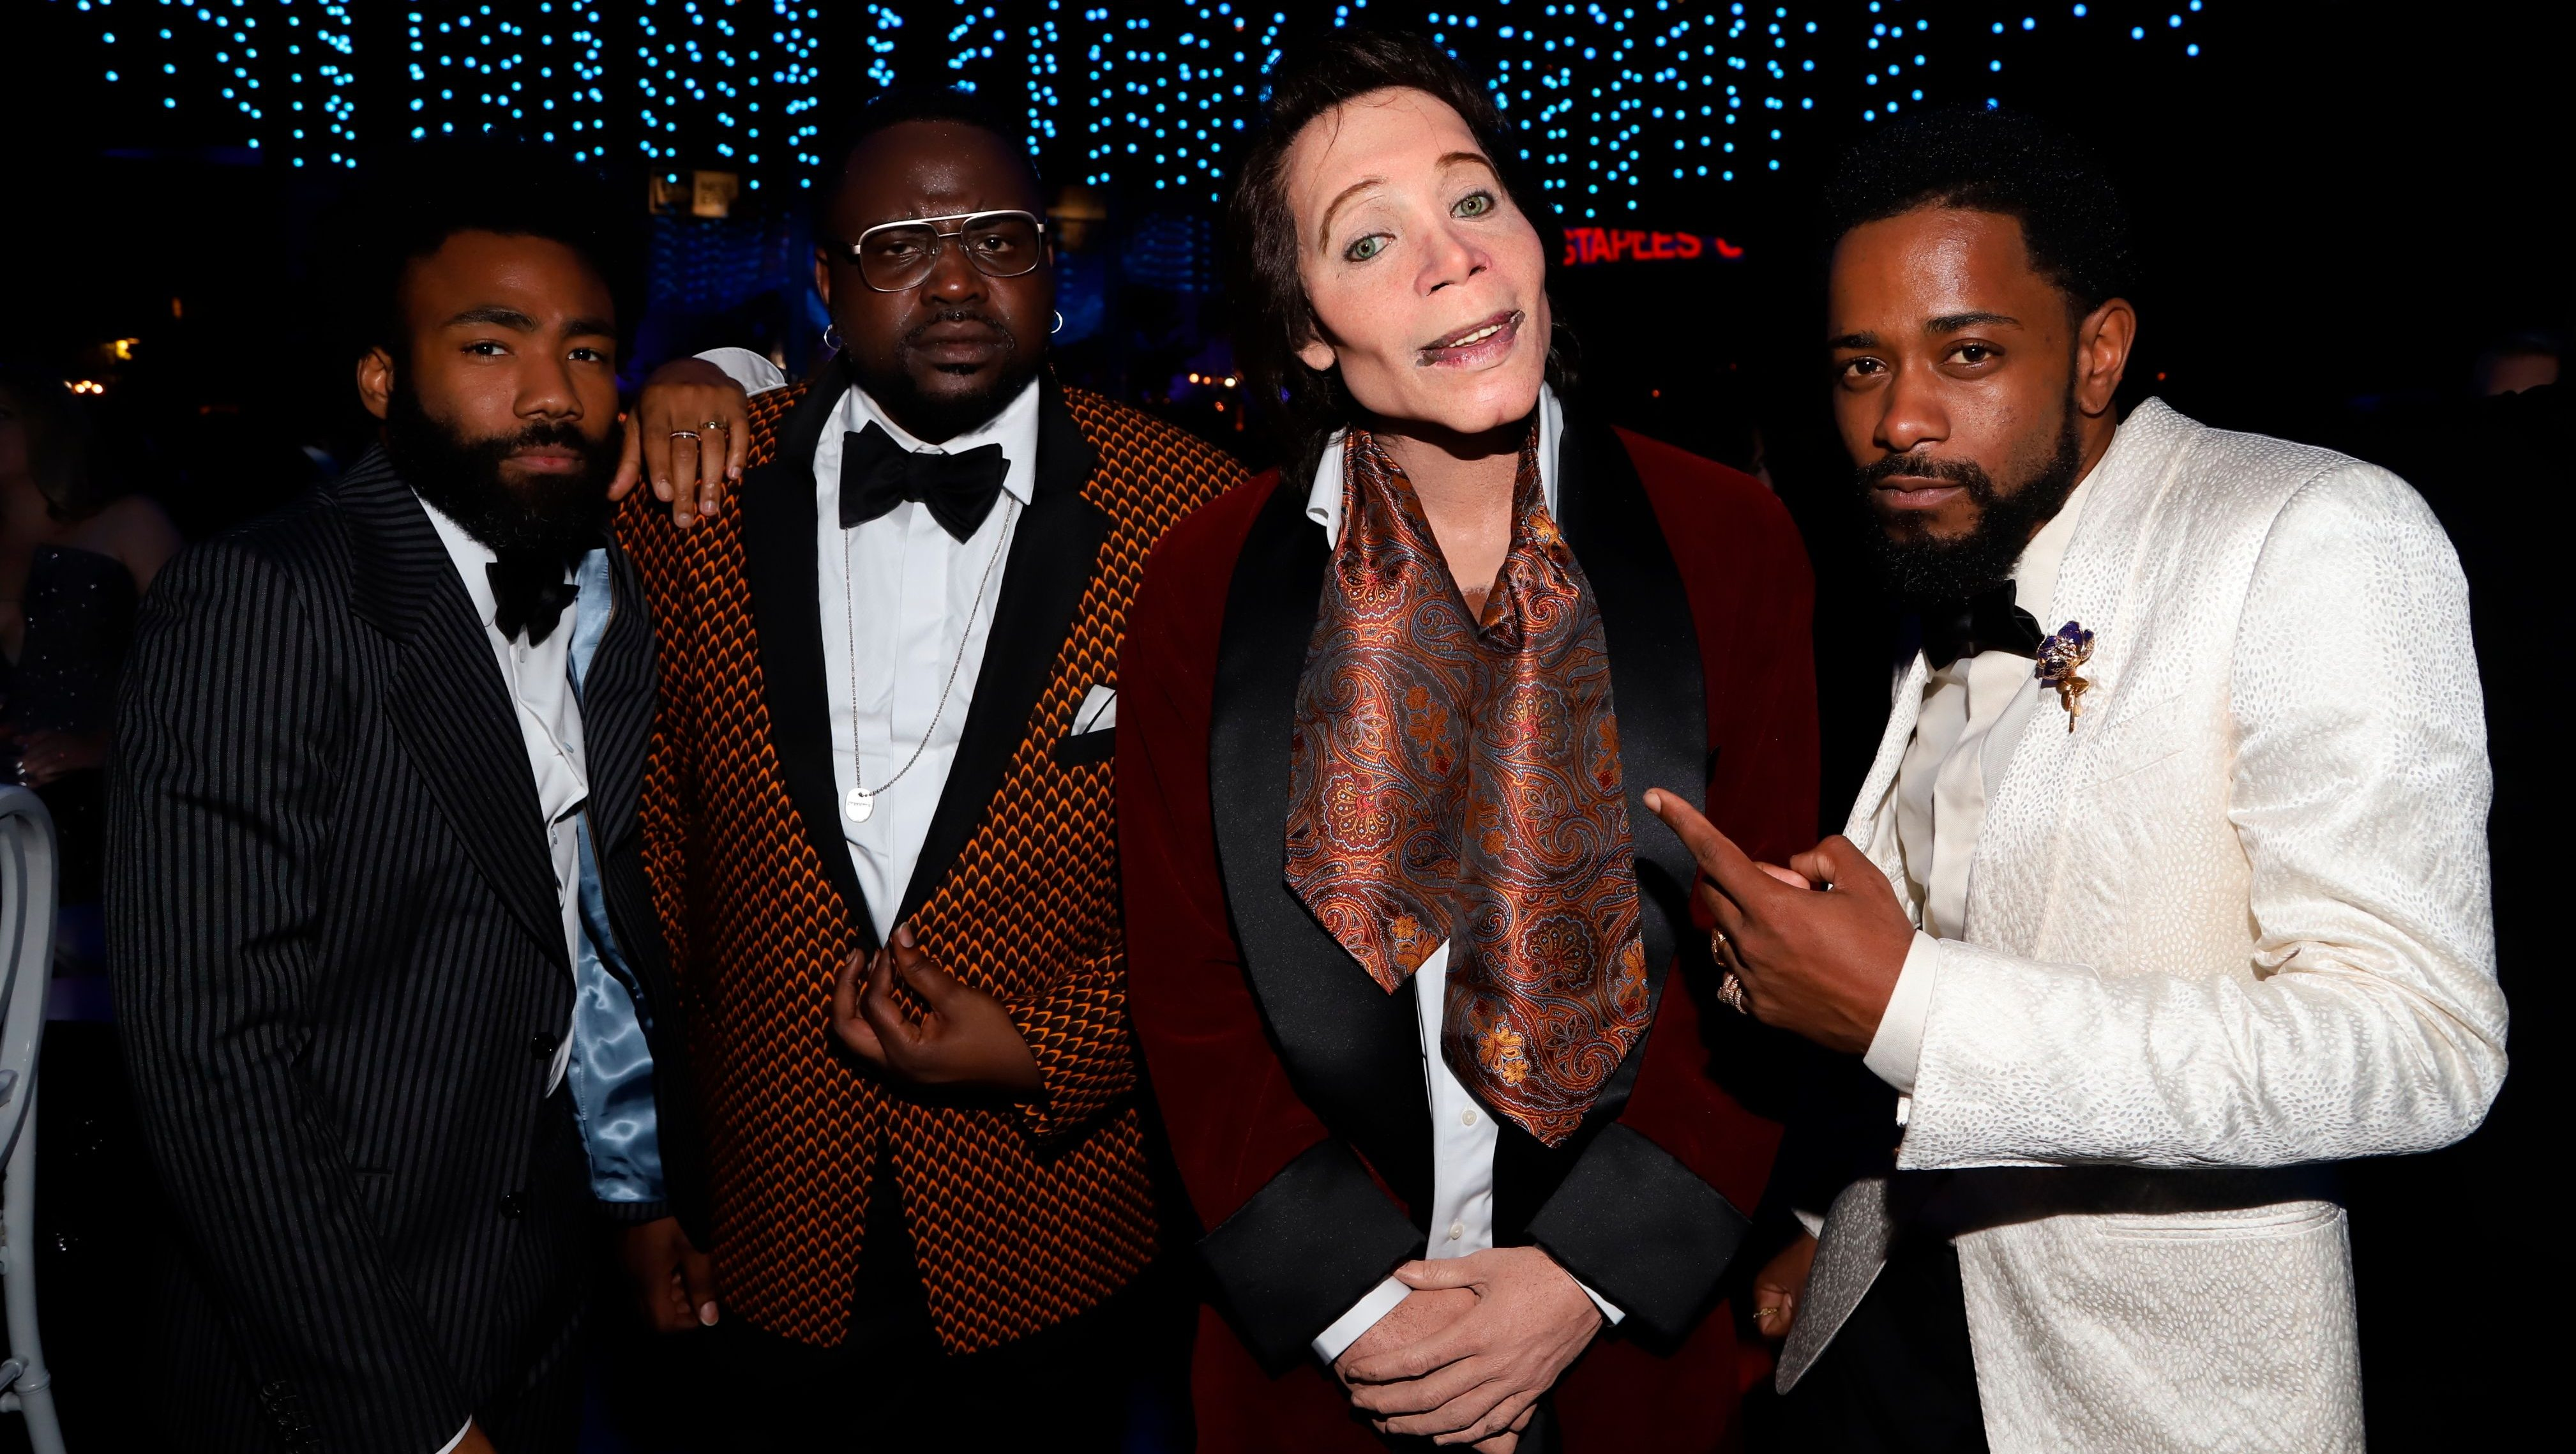 Donald Glover, Brian Tyree Henry, Teddy Perkins, Lakeith Stanfield